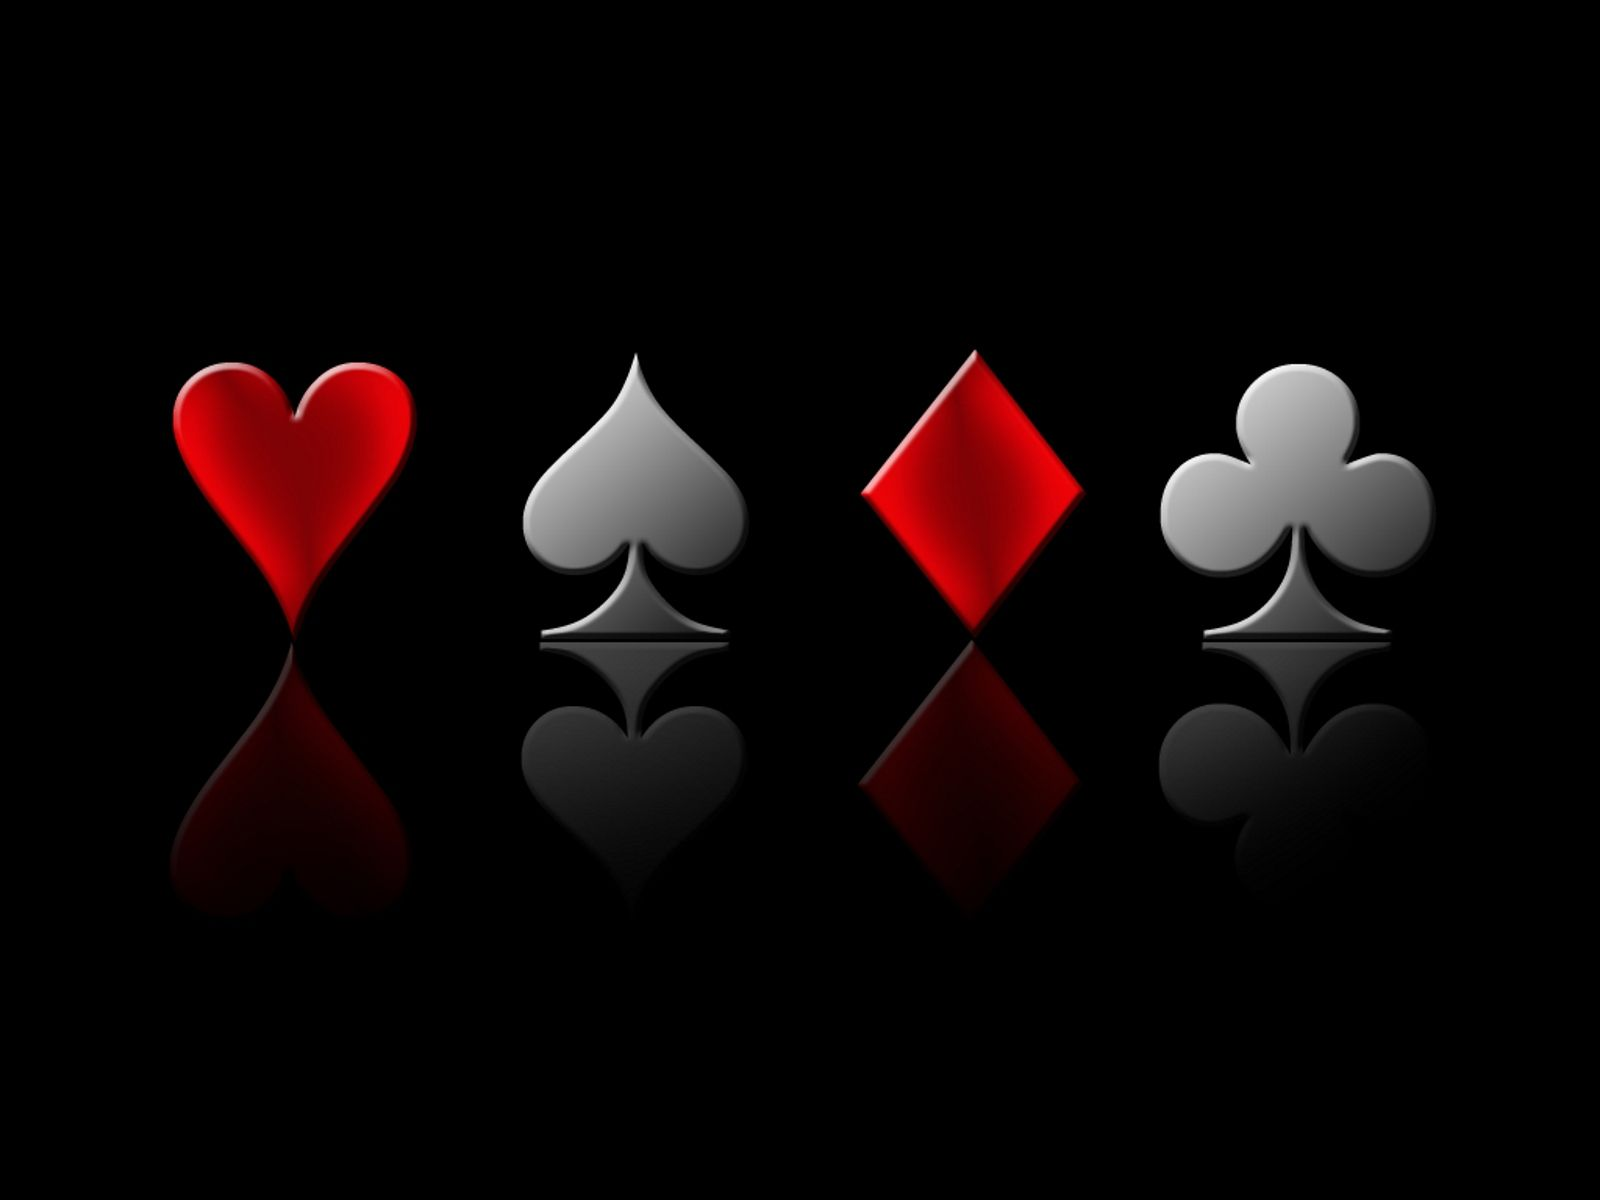 Talking About Poker Online With Friends And Why You Have To Be Concerned